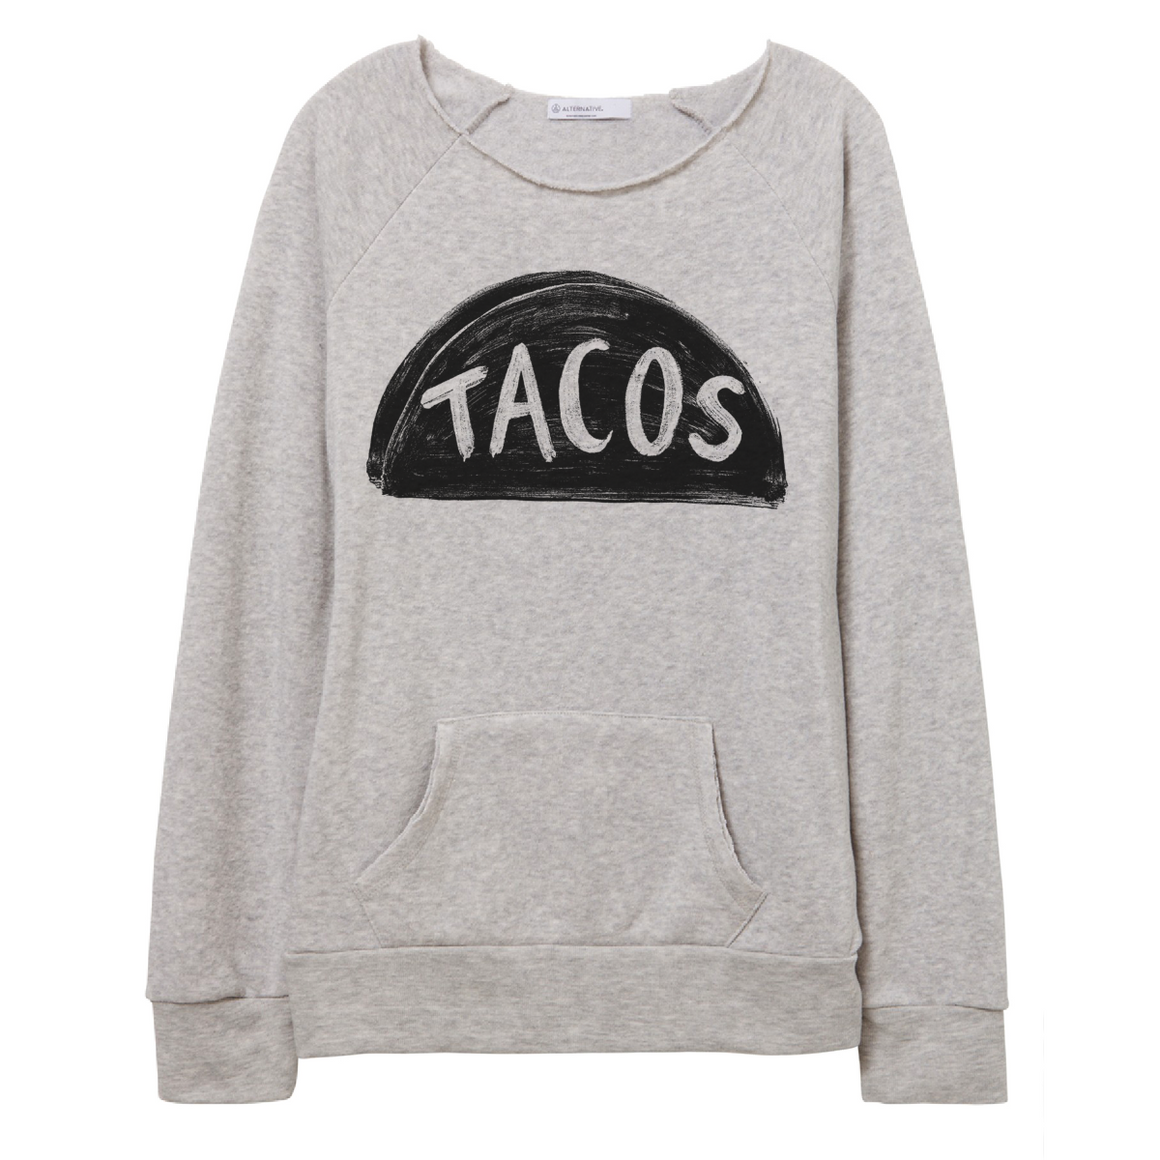 Womens Slouchy Off the Shoulder Taco Lover Sweatshirt